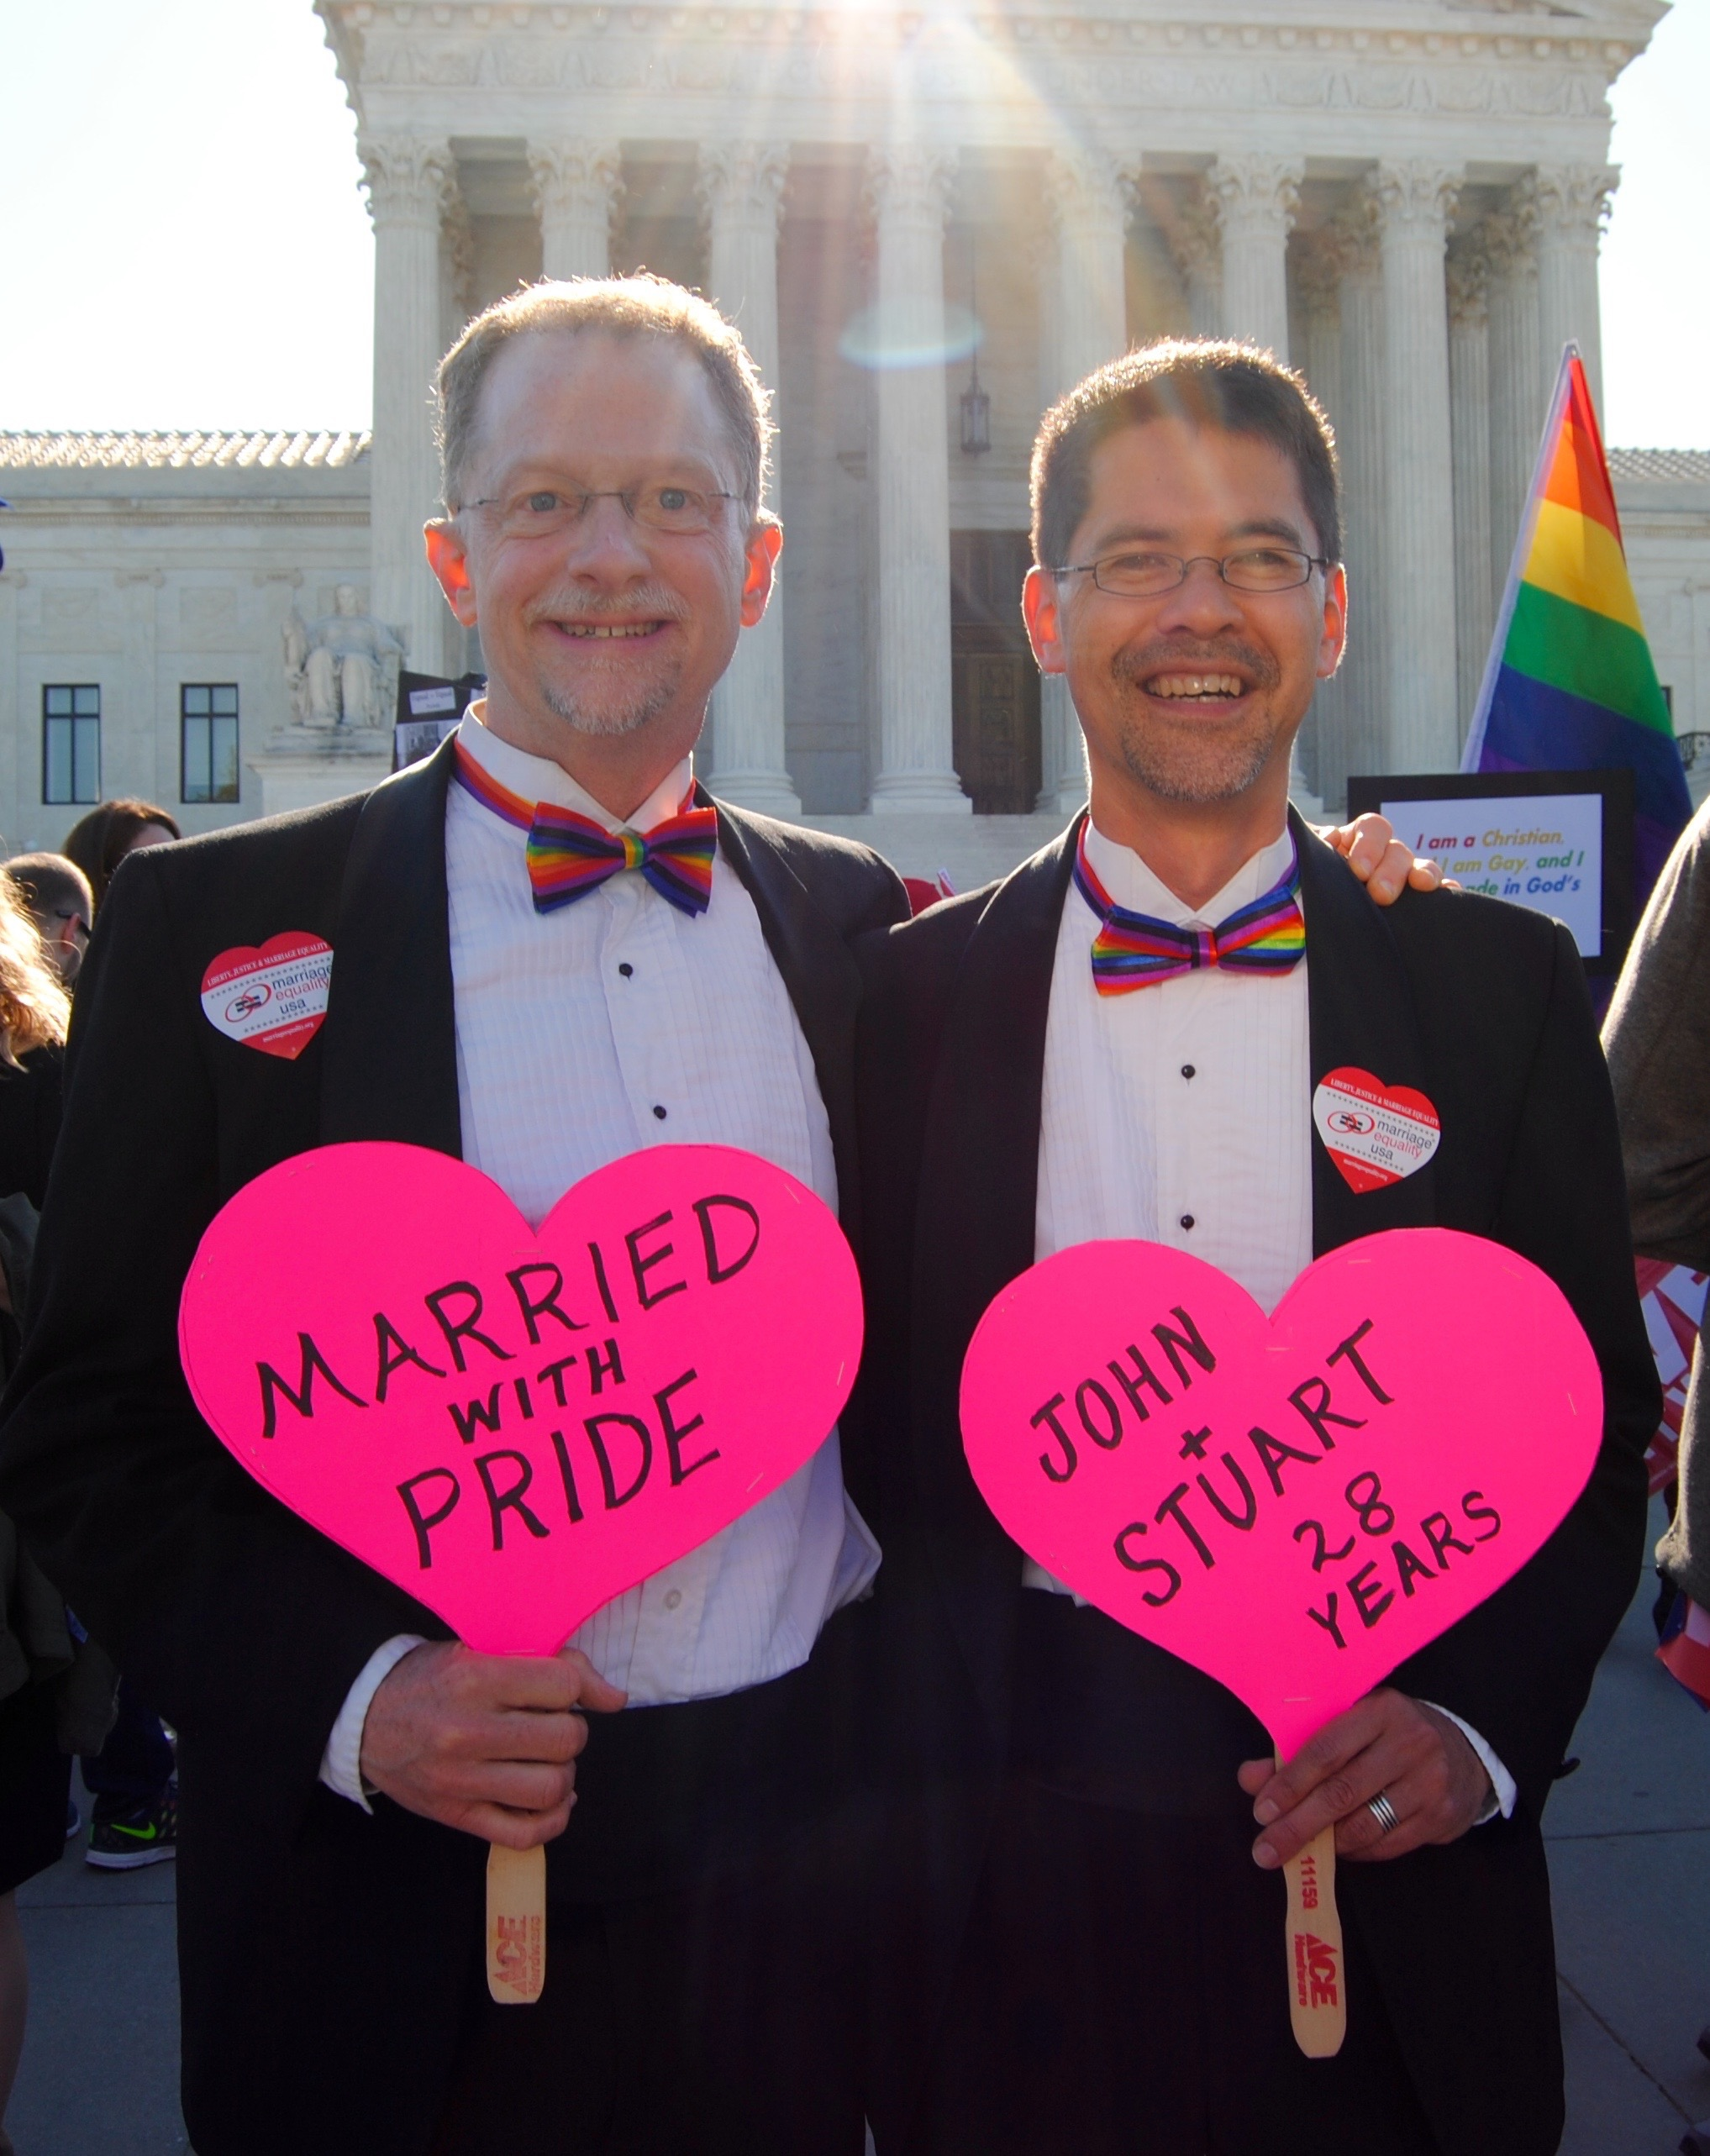 A gay couple protest in front of the Supreme Court